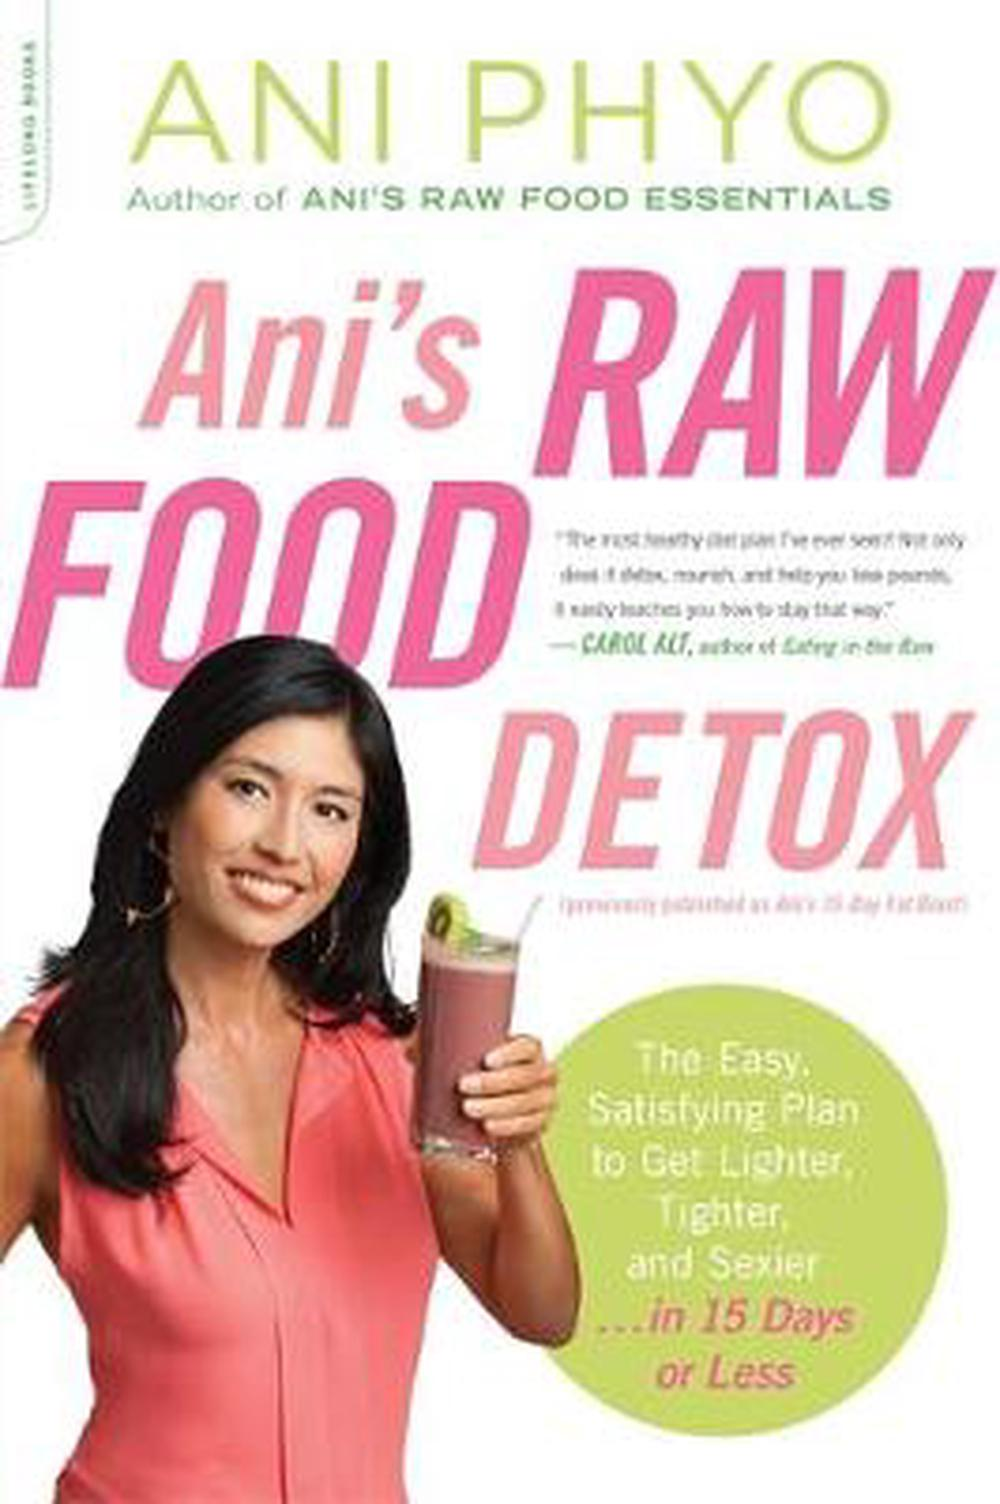 Ani's Raw Food Detox: The Easy, Satisfying Plan to Get Lighter, Tighter, and Sexier... in 15 Days or Less